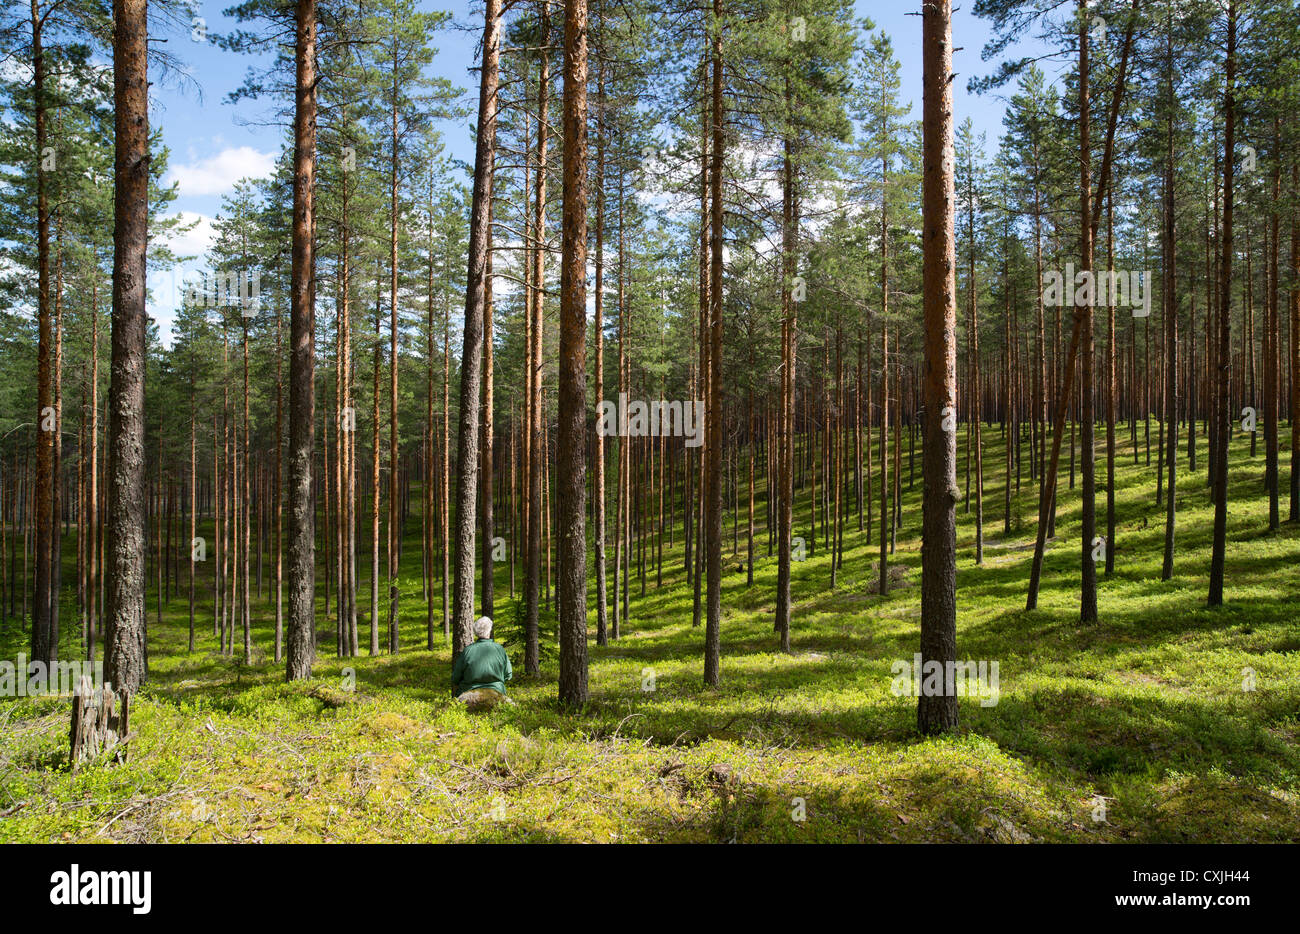 Pine ( pinus sylvestris ) forest growing on dry esker heathland and an elderly woman sitting. , Finland - Stock Image